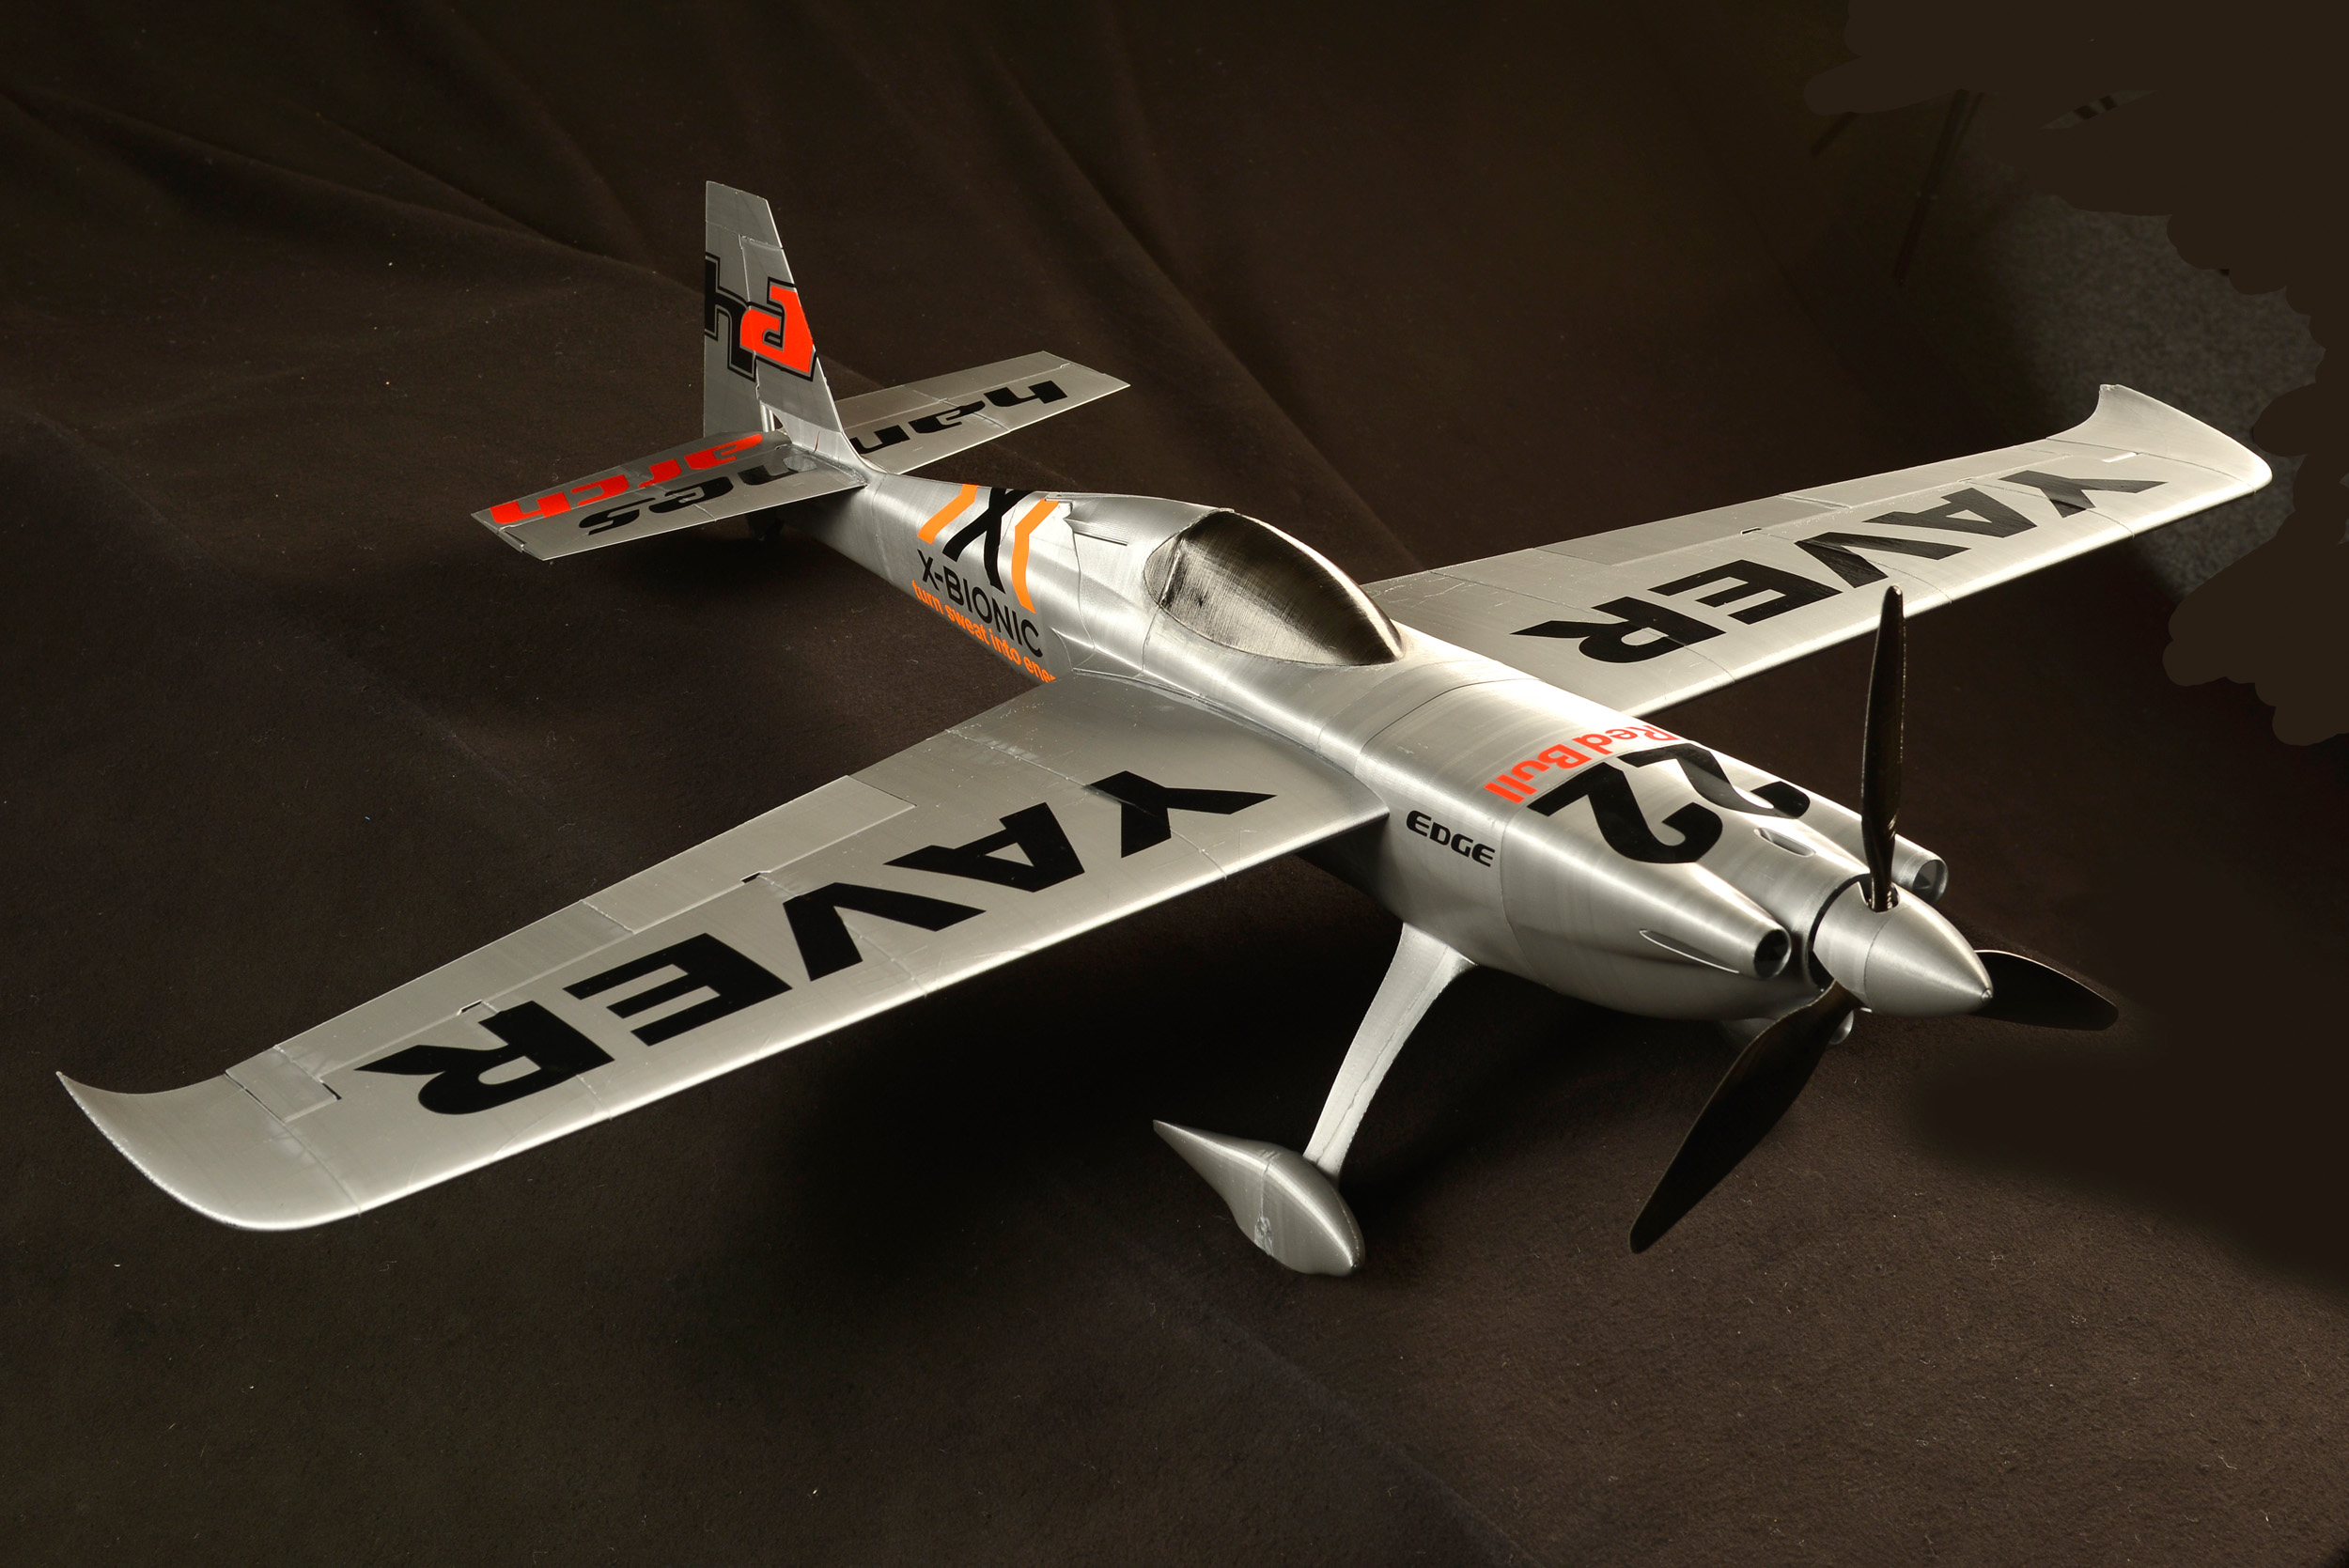 rc plane edge with Zivko Edge Hannes Arch Replica on Boeing 747 8 The Wing Design Additional Performance With Lower Noise likewise Bat Flight Versus Bird Flight further Model Airplane Design moreover 298785756499690003 as well Supermarine Spitfire Mkix.